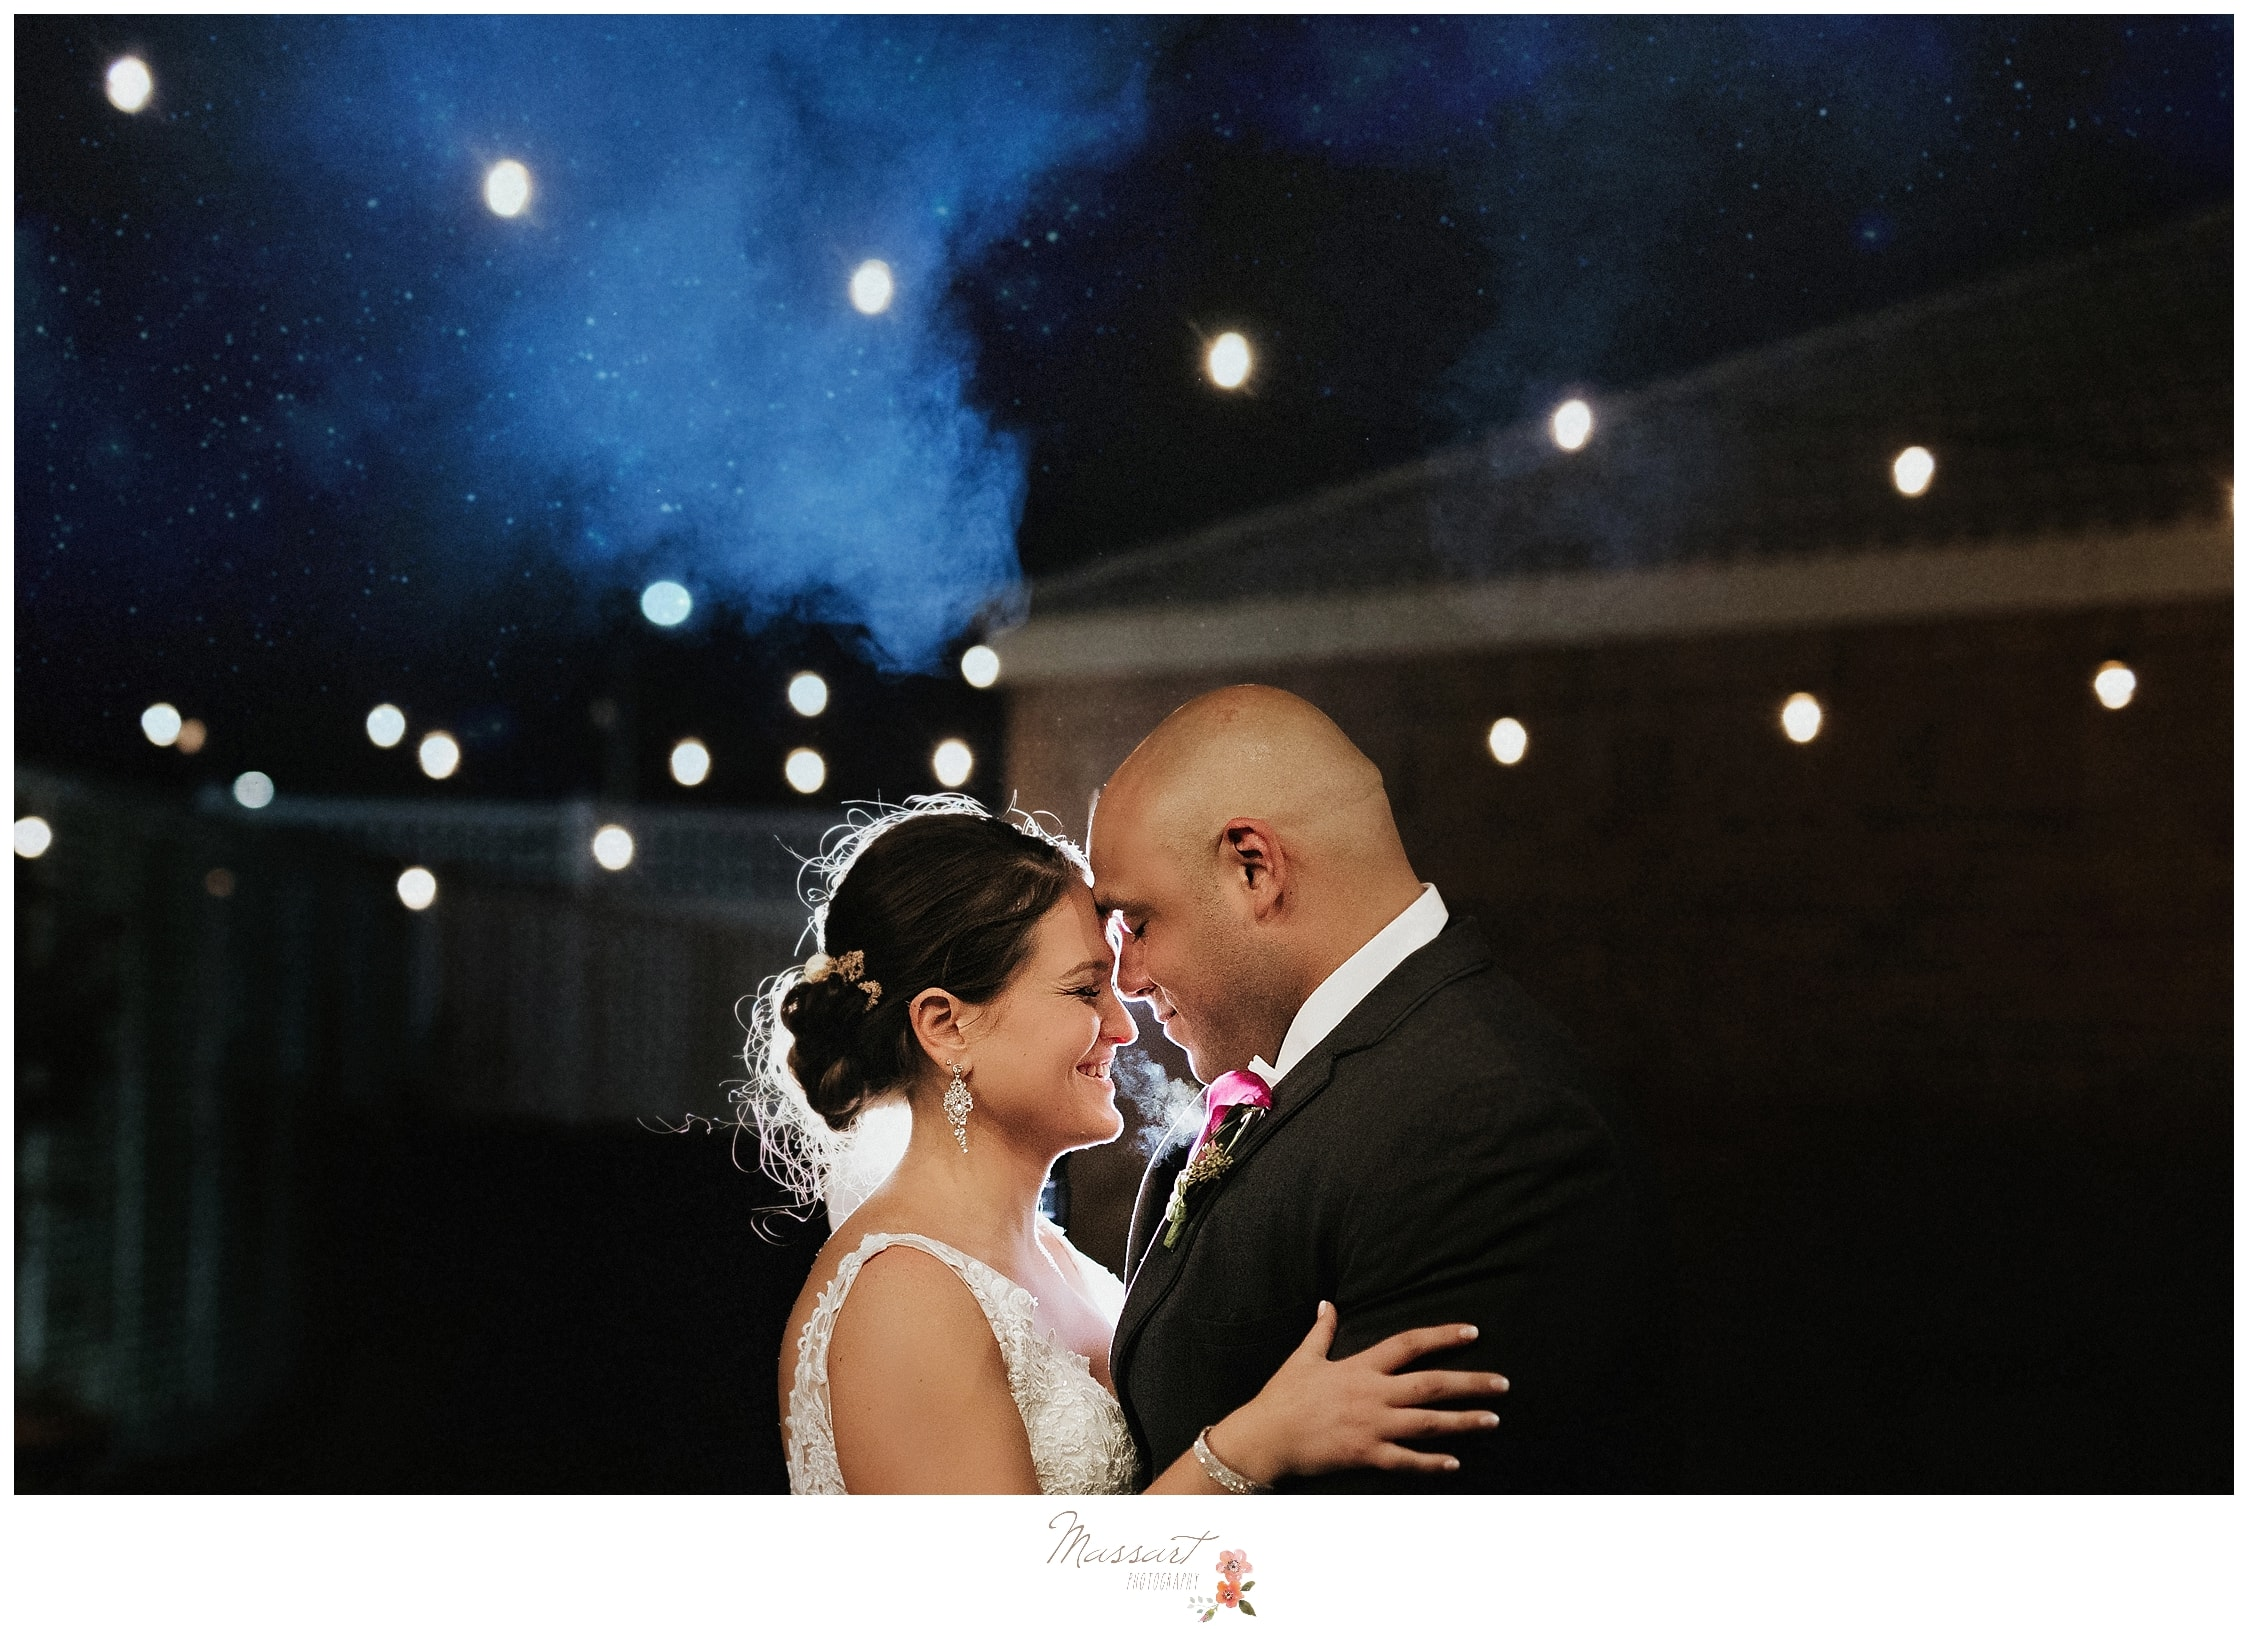 Nighttime outdoor wedding portraits with wedding photographers Massart Photography